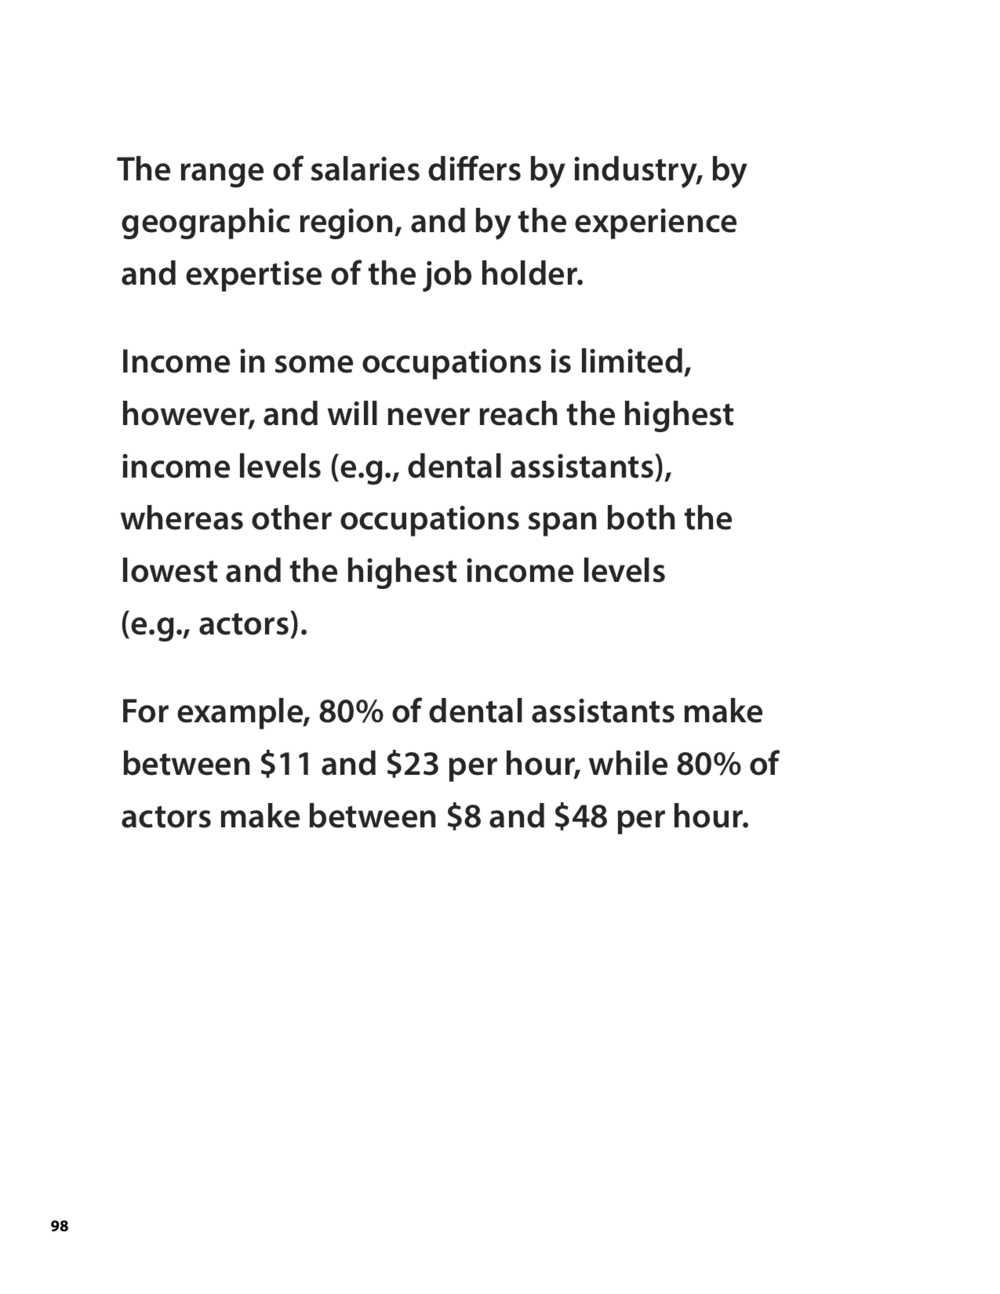 IncomeGuide_2013_Jan17_RGB_page 98_98.png